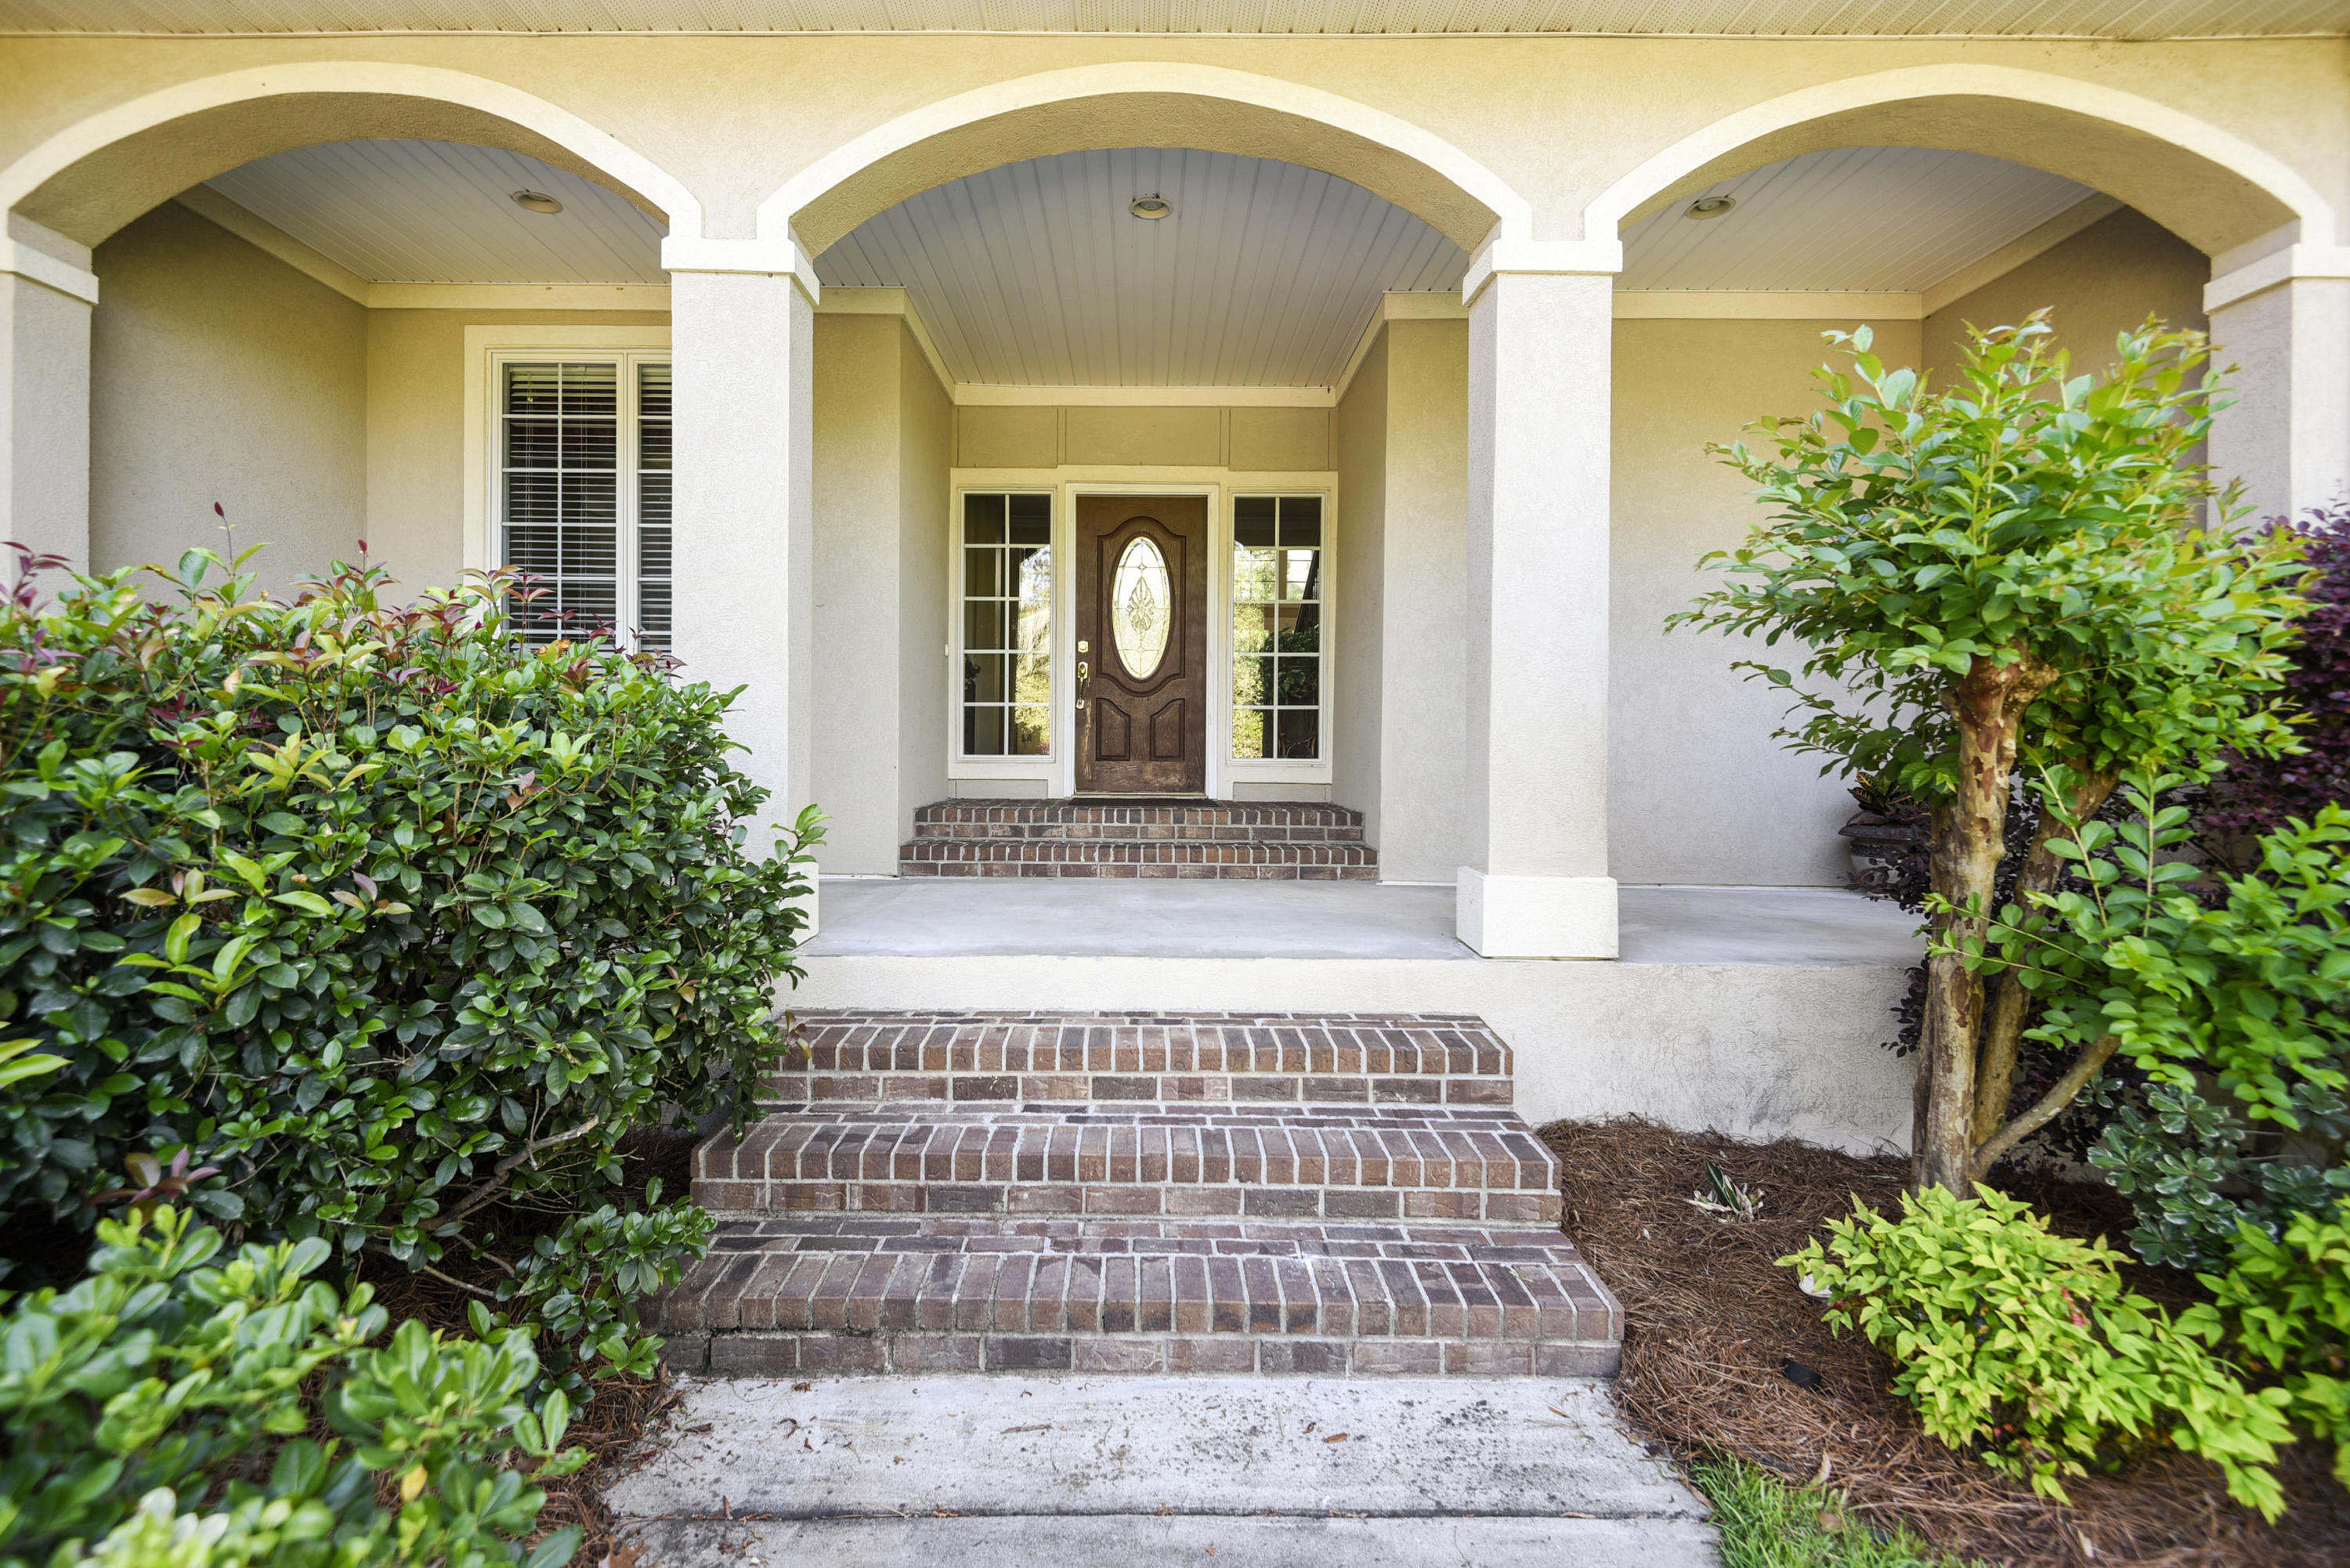 Coosaw Creek Country Club Homes For Sale - 8855 Fairway Woods, North Charleston, SC - 50